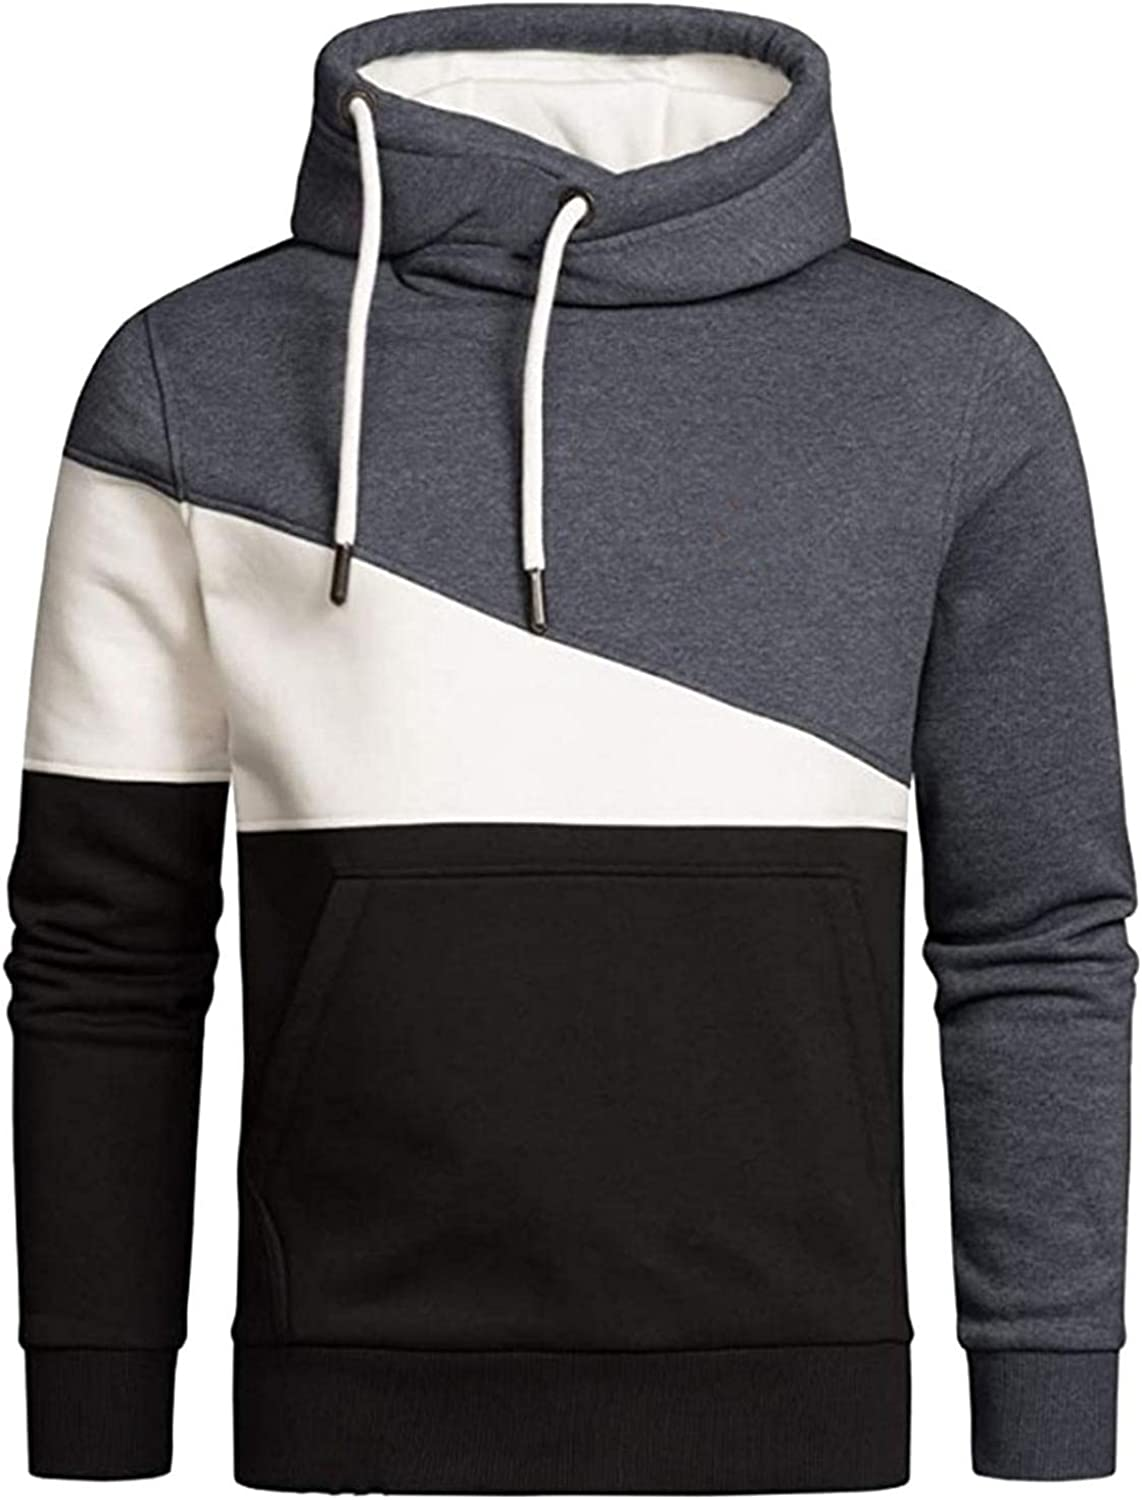 Hoodies for Men Mens Casual Dark Color Matching Long Sleeve Fashion Tether Pullover Top Windproof Fashion Hoodies Sweatshirt